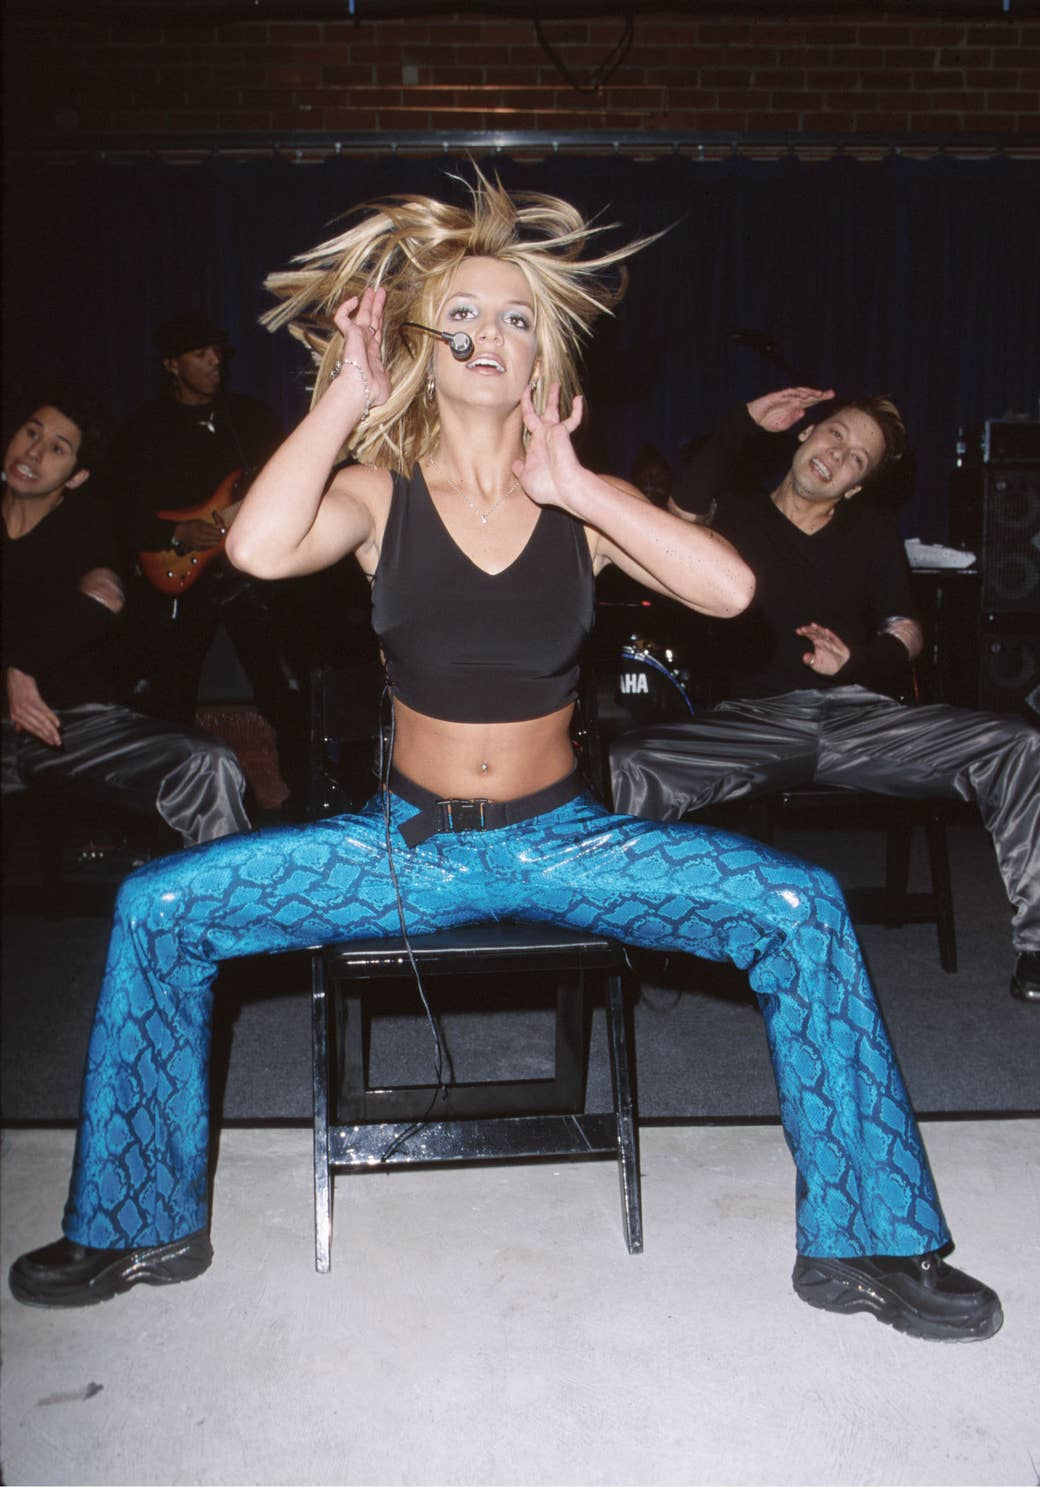 Britney Spears wears a tank top and blue patterned pants as she dances on a chair